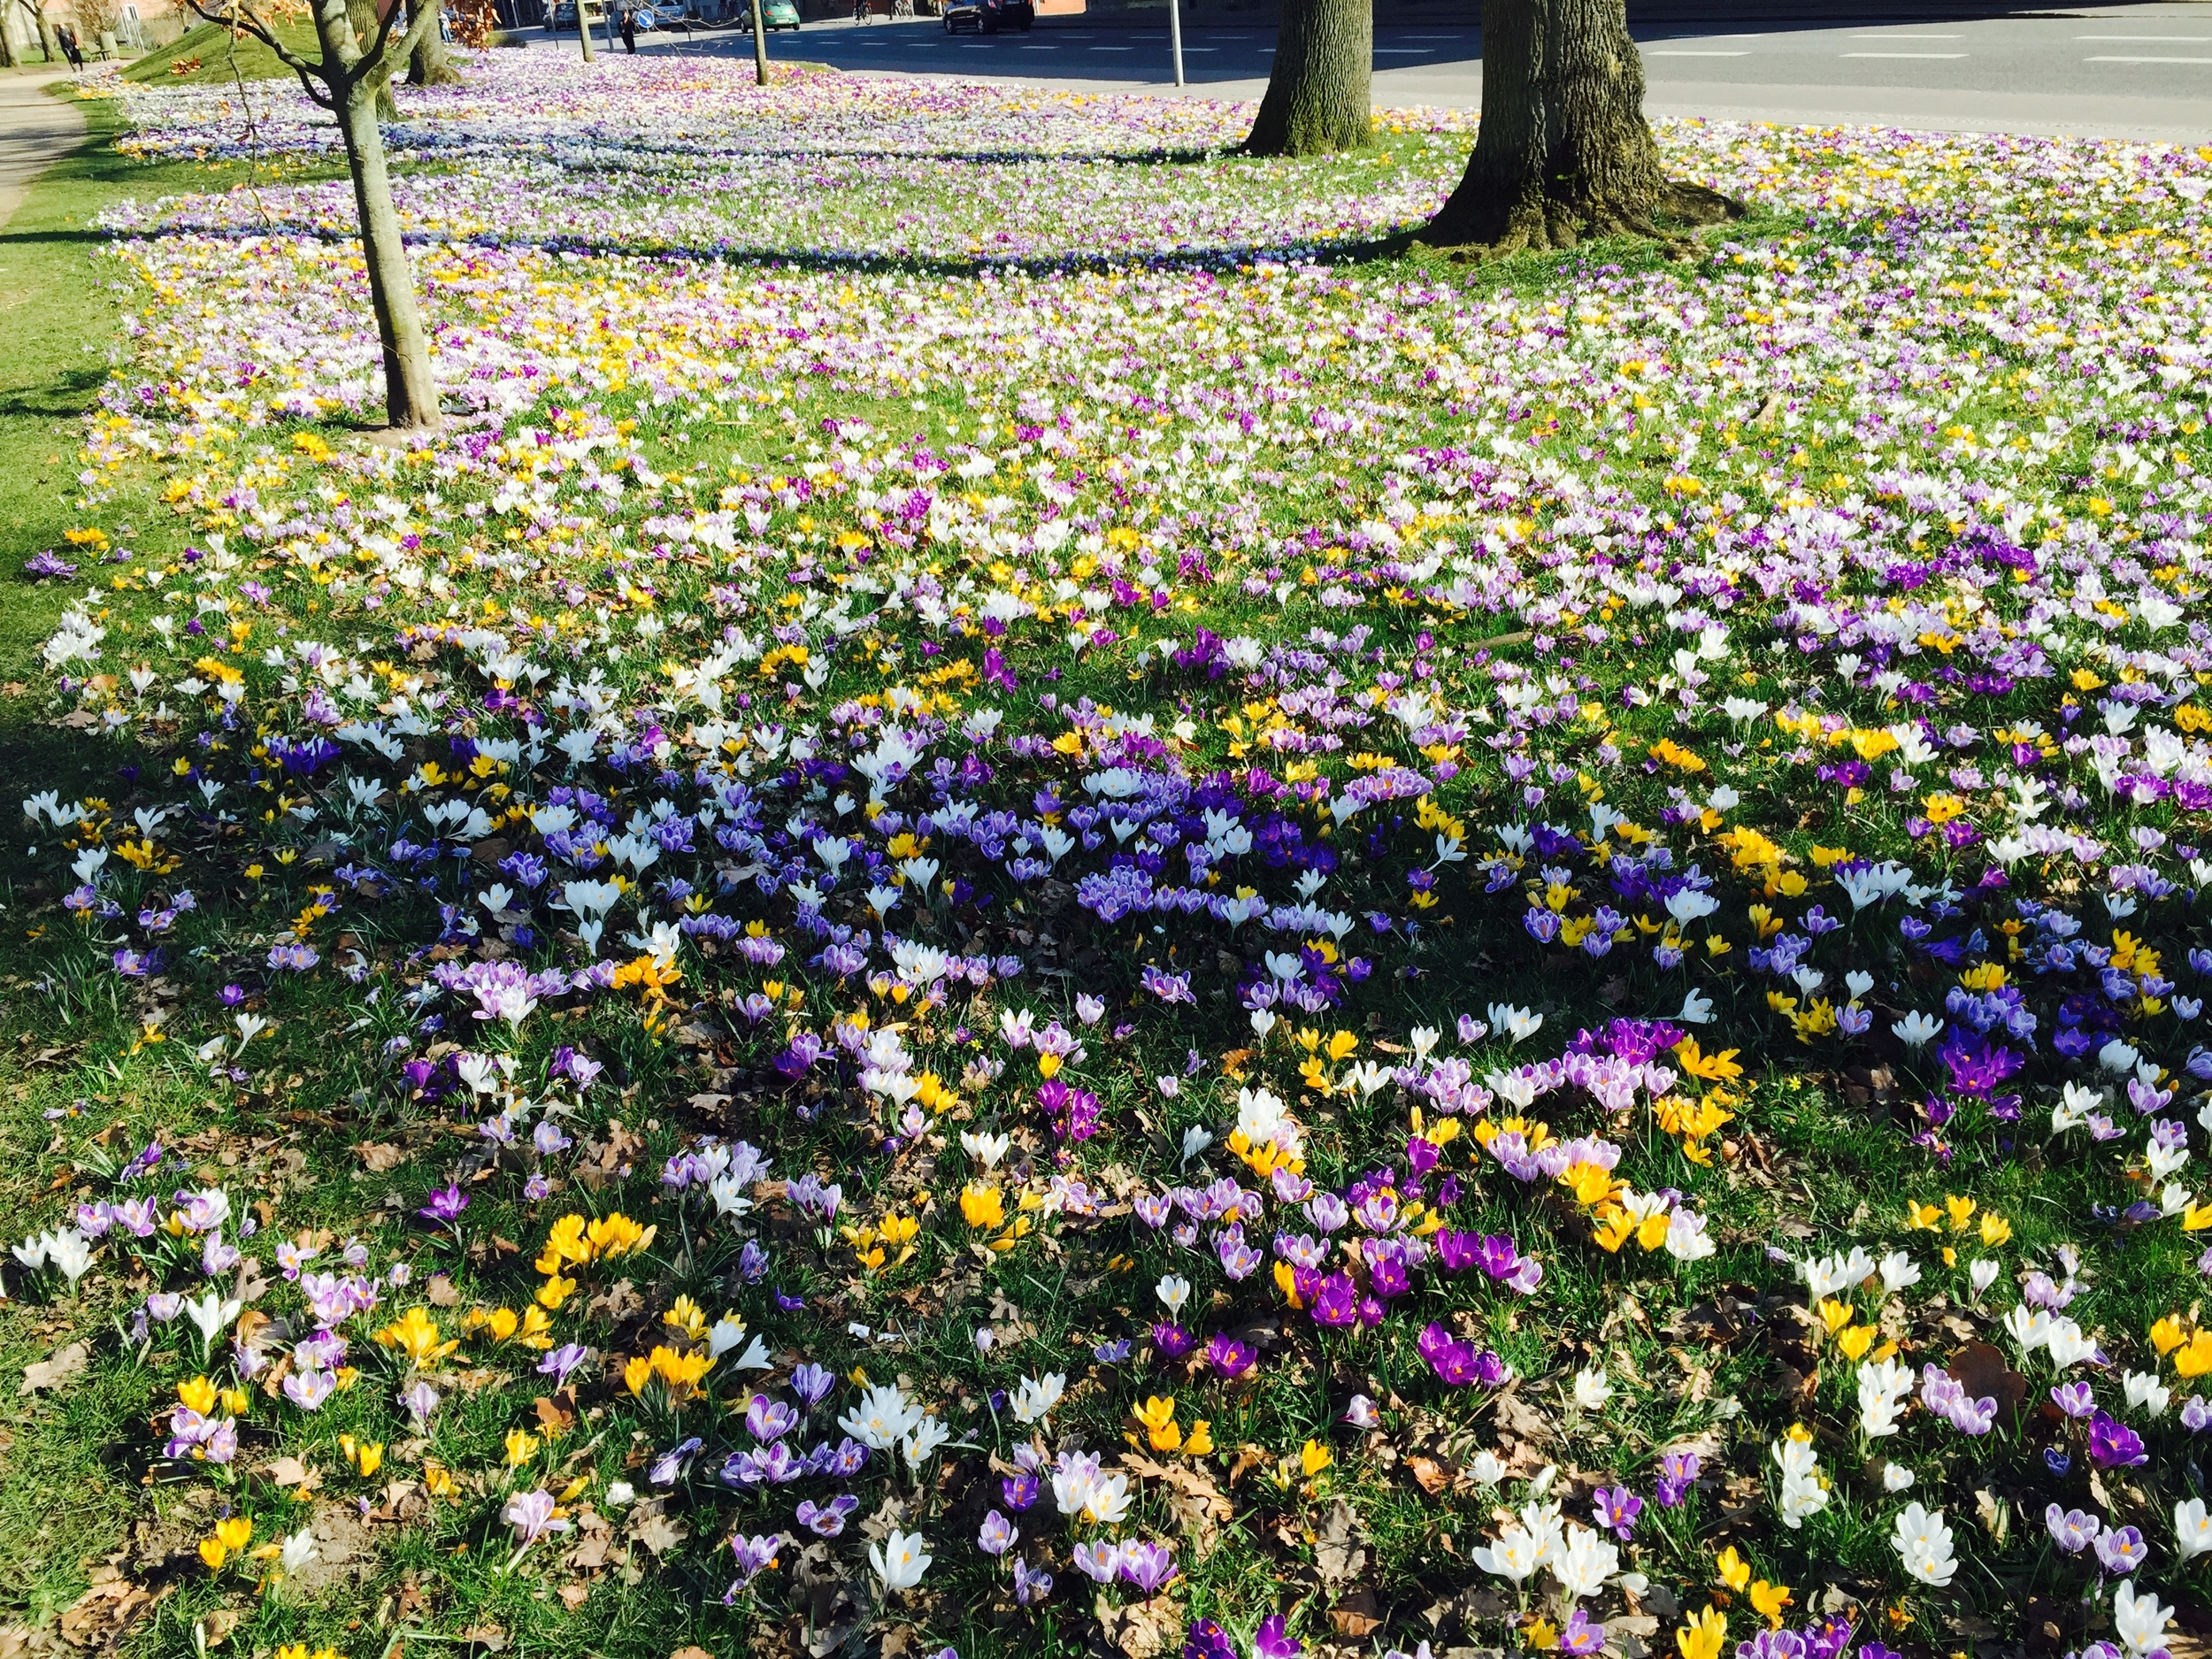 Beauty_And_nature_spring_flowers_1.jpg